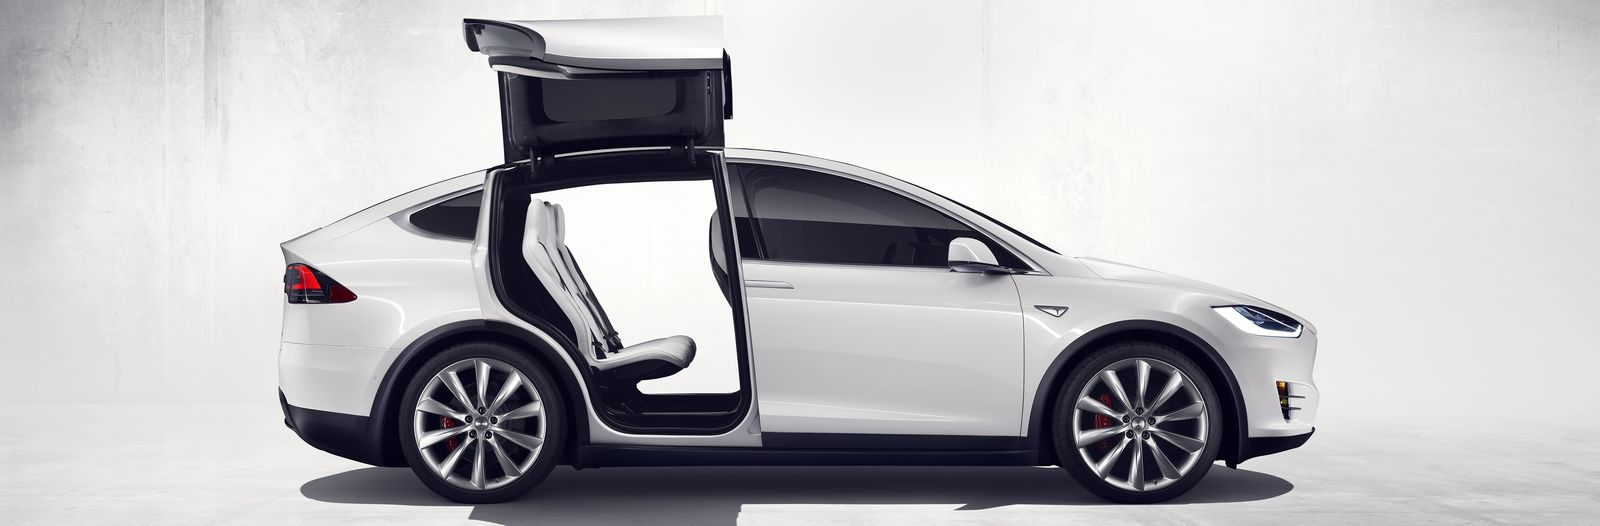 Tesla Model X Sizes And Dimensions Guide Carwow